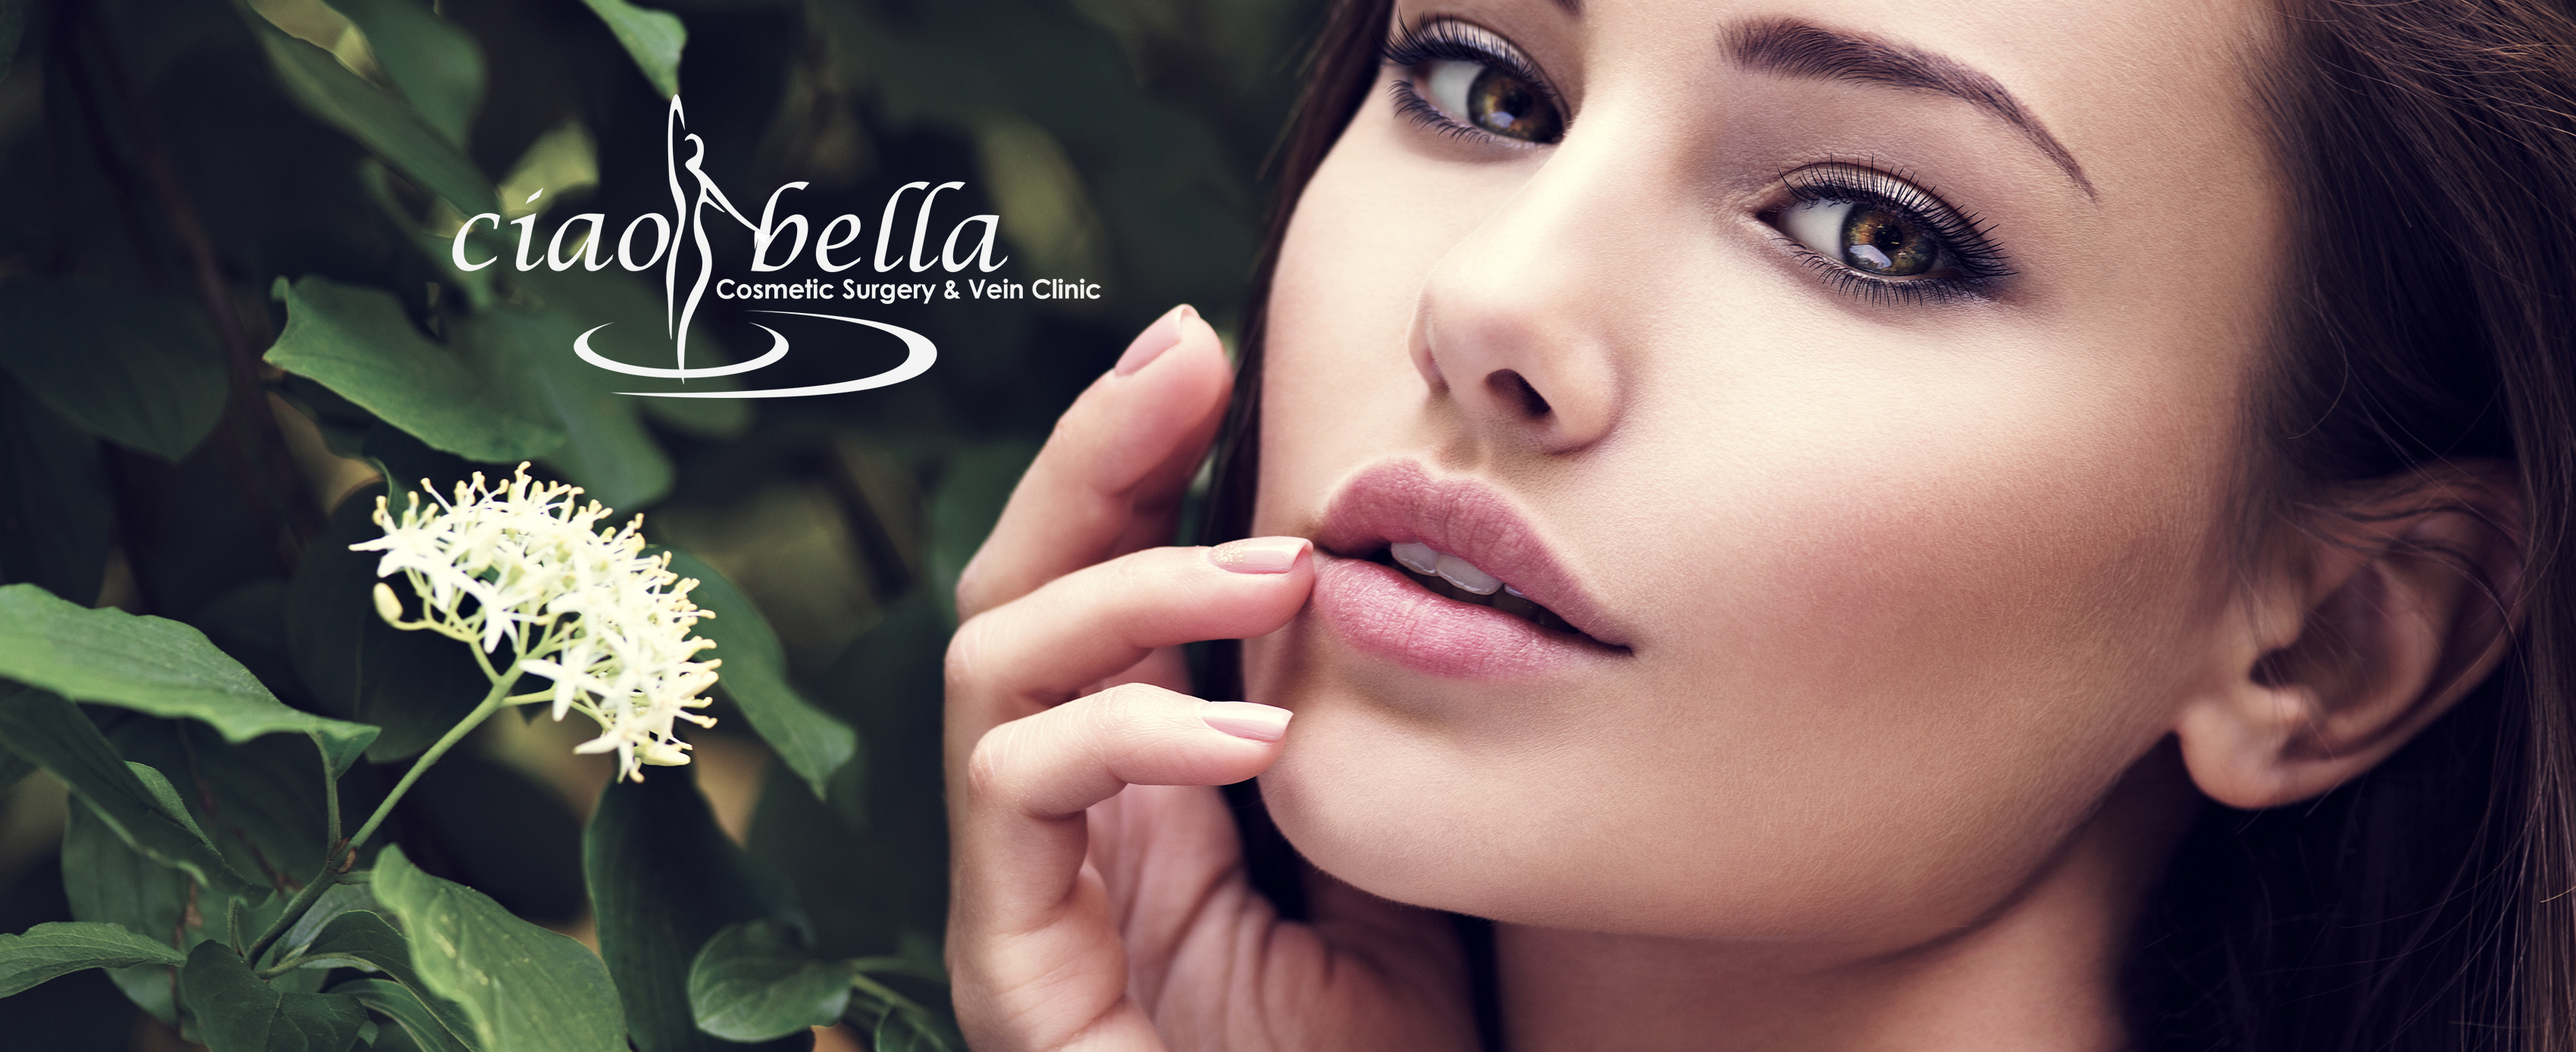 Ciao Bella Cosmetic Surgery reviews | 2310 W. Ray Rd. - Chandler AZ